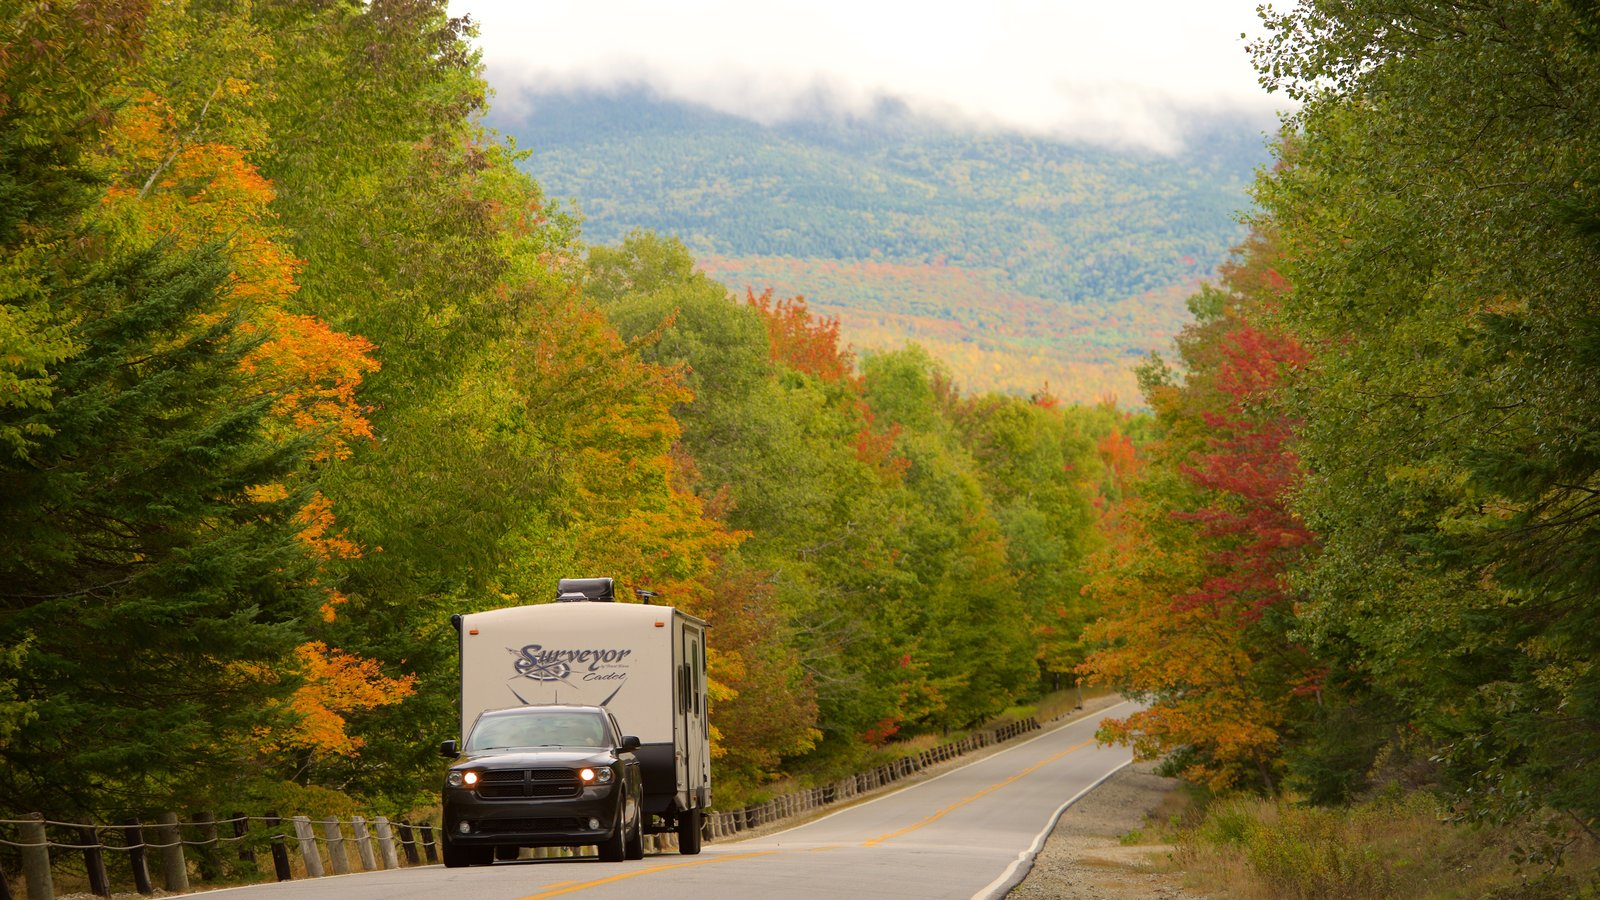 Maine which includes fall colors, tranquil scenes and forest scenes